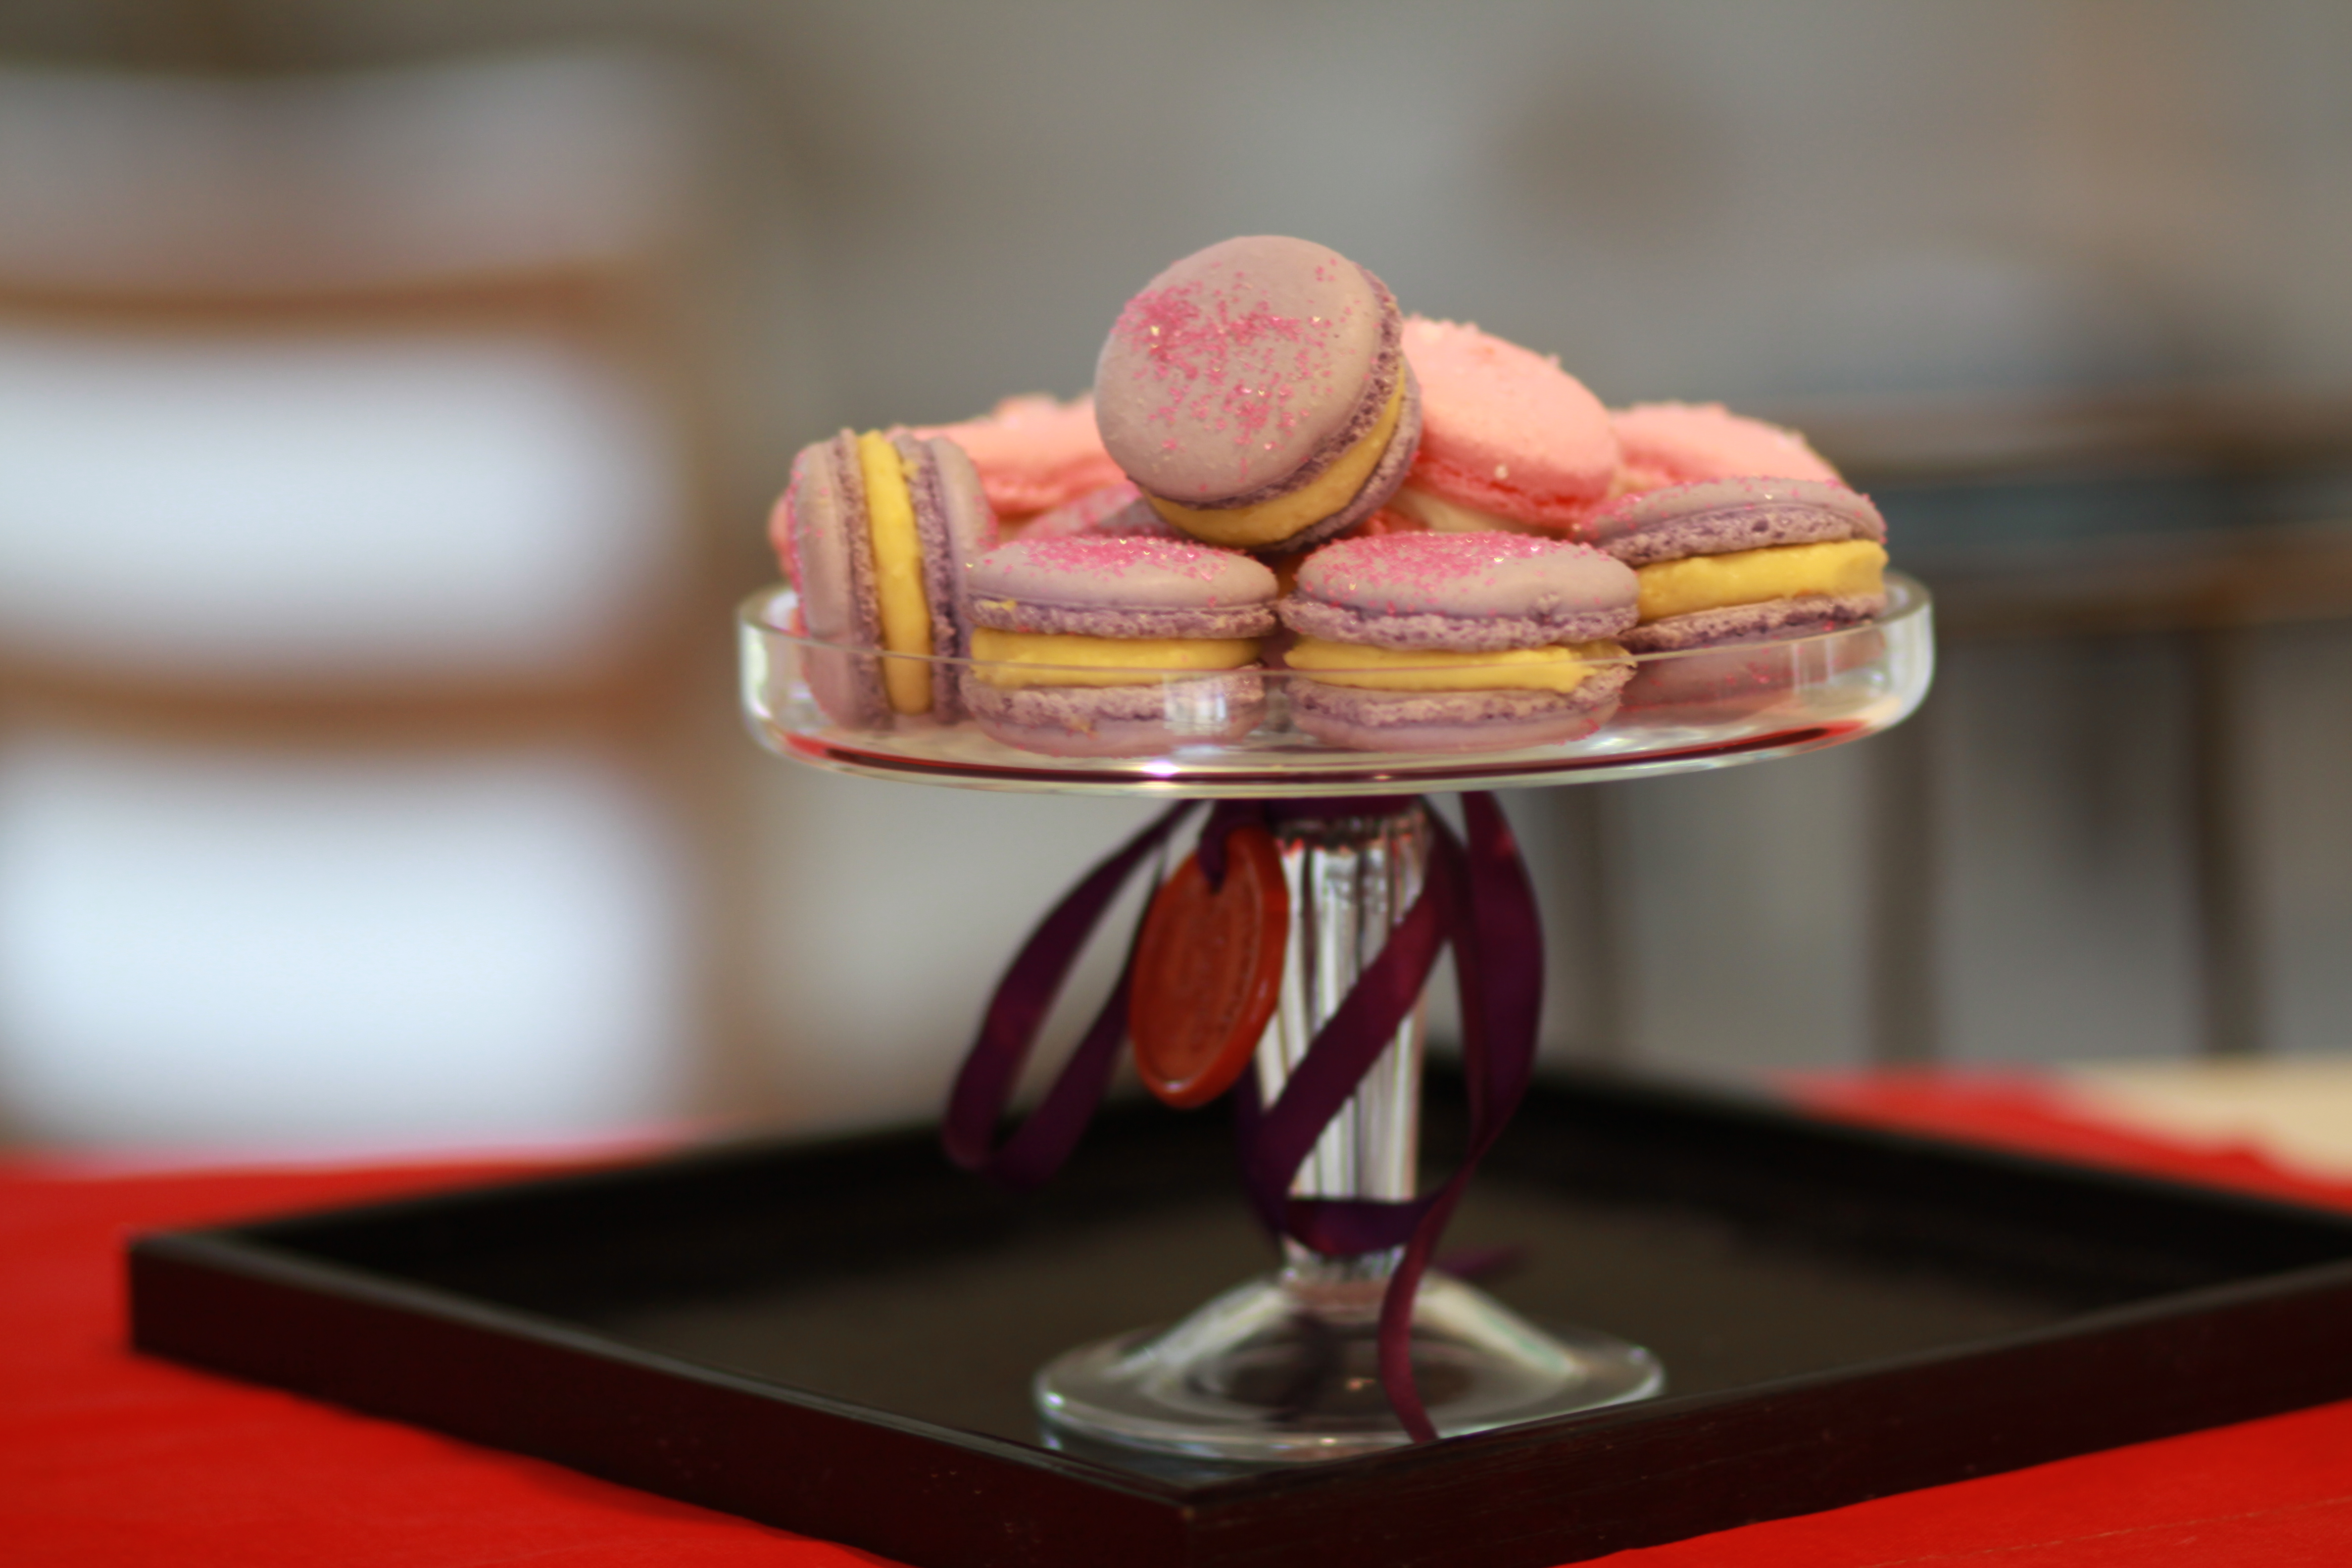 Pierre Herme: Violet Macaron with Lemon Filling